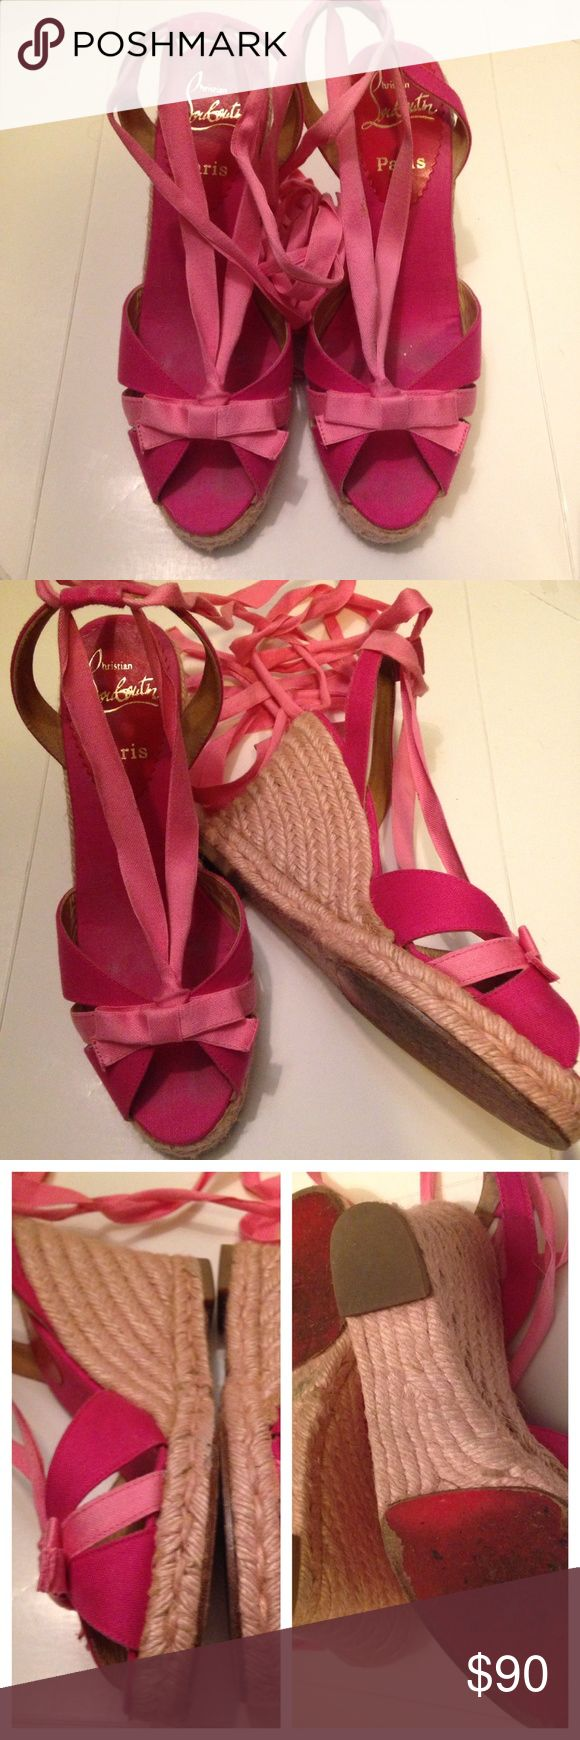 ❄️Authentic Christian Louboutin Pink Espadrilles Purchased at a top consignment store in NYC, I have only worn these once. Beautiful and comfortable, they feature jute dyed lightly pink and soft leather with fabric covering uppers. Bottom features the classic Louboutin red sole. Christian Louboutin Shoes Espadrilles